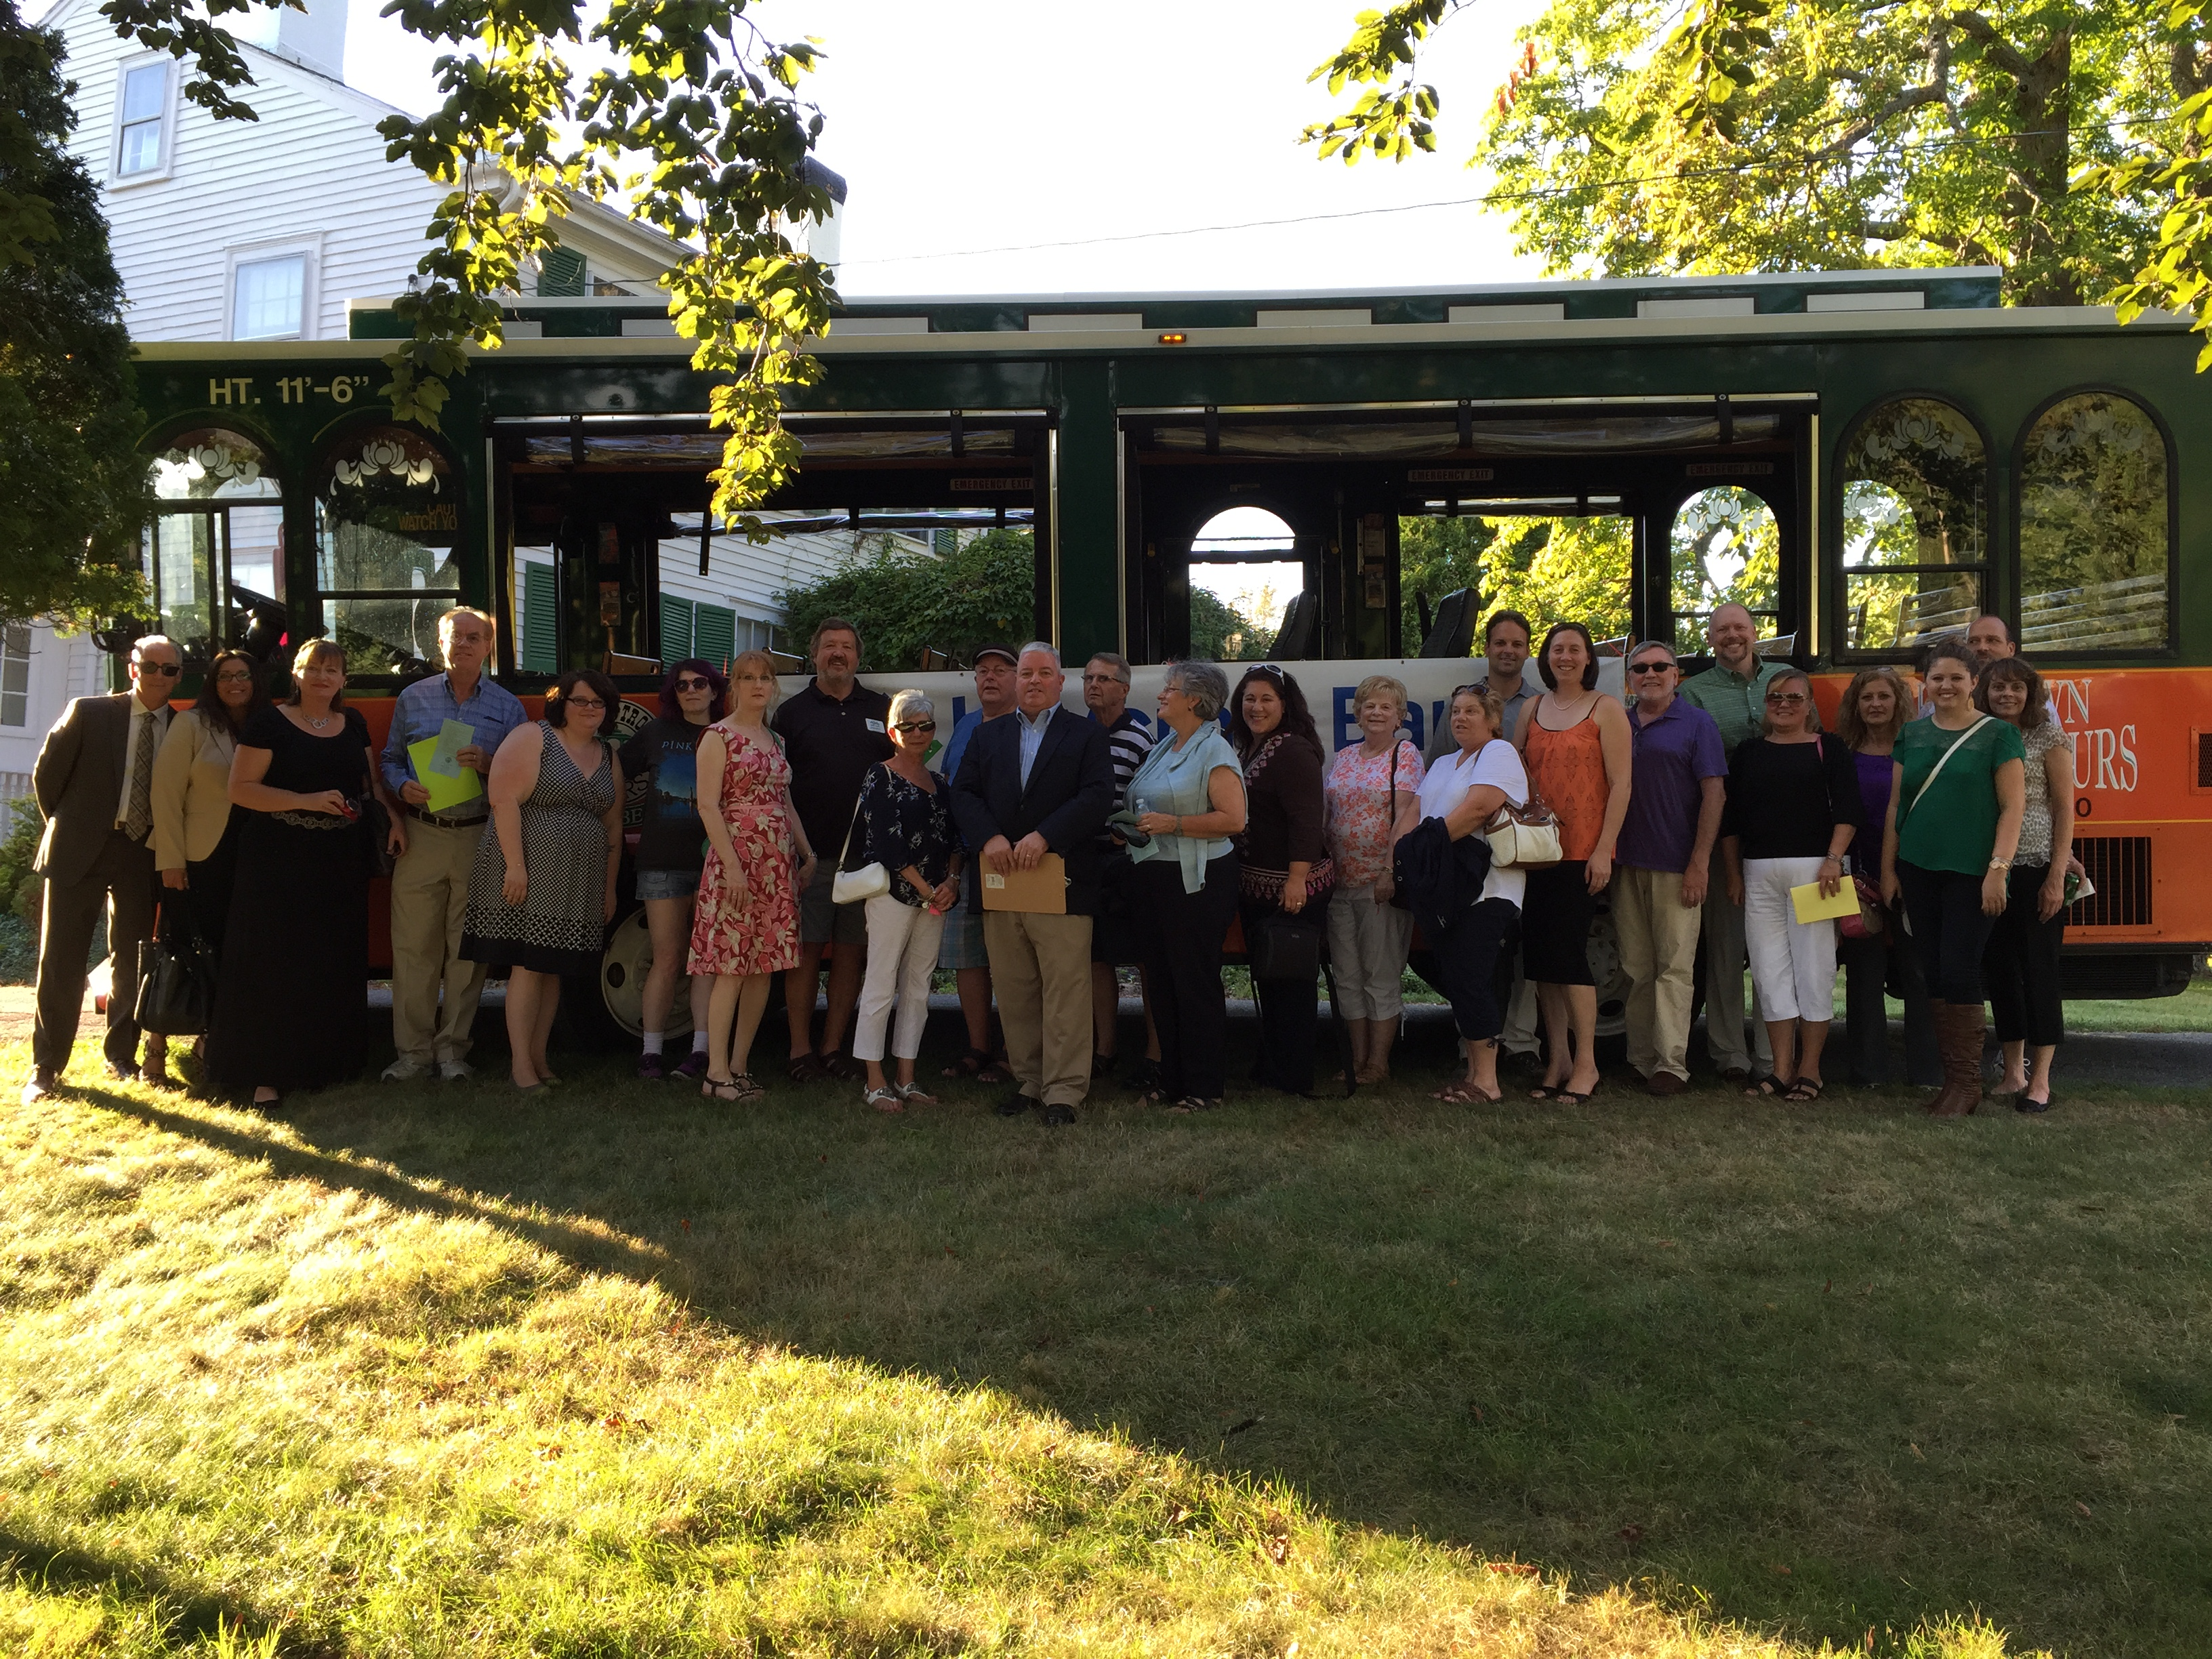 A HUGE SUCCESS – Chamber's Trolley Tour Highlights Haverhill's Cultural Treasures